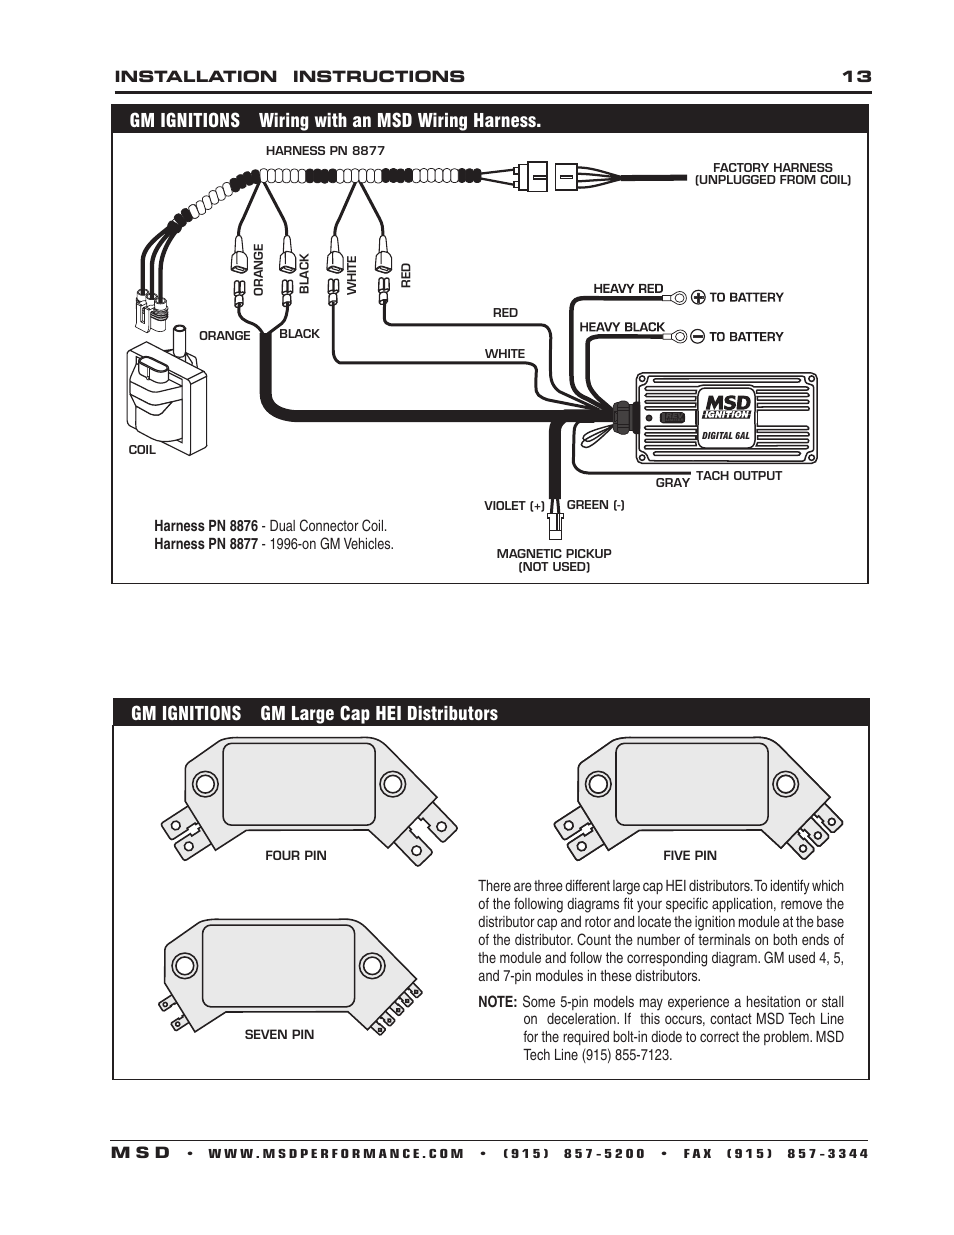 6201 Msd Hei Distributor Wiring Diagram Will Be A Chevy Gm Ignitions With An Harness Rh Manualsdir Com Ignition 6a